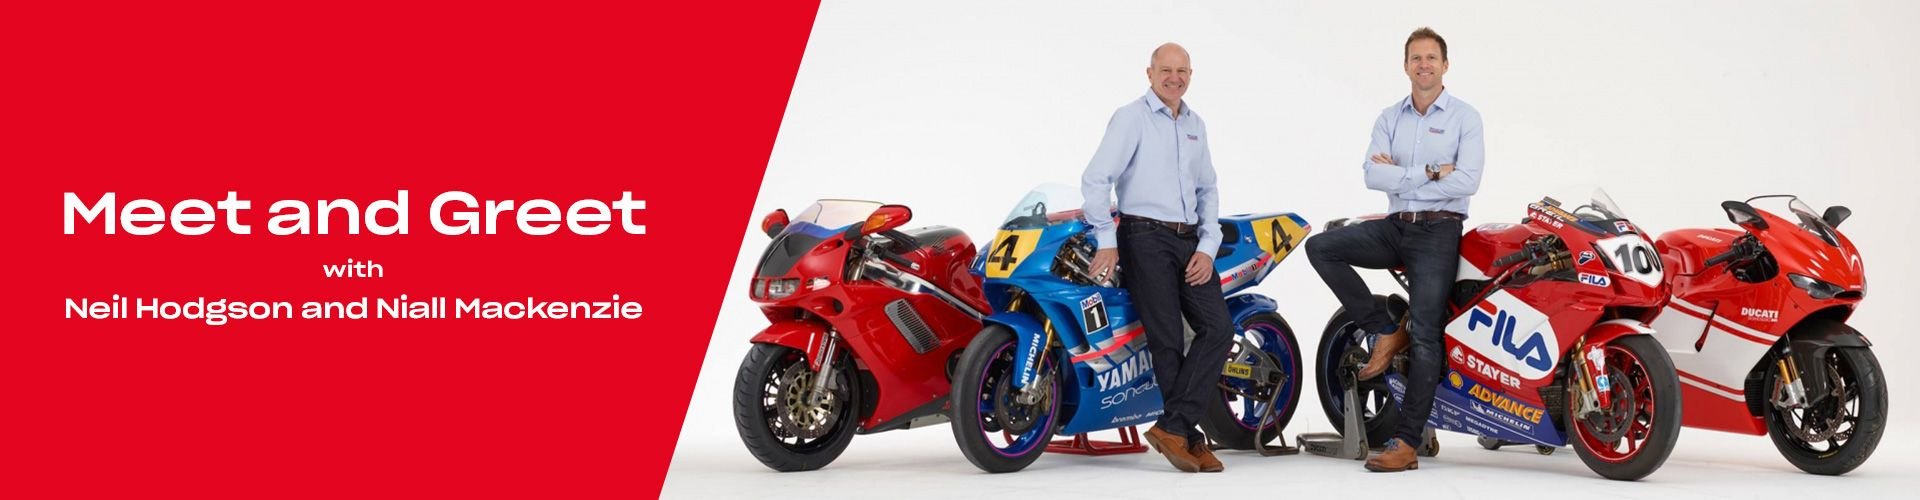 North West Honda Meet and Greet with Neil Hodgson and Niall Mackenzie